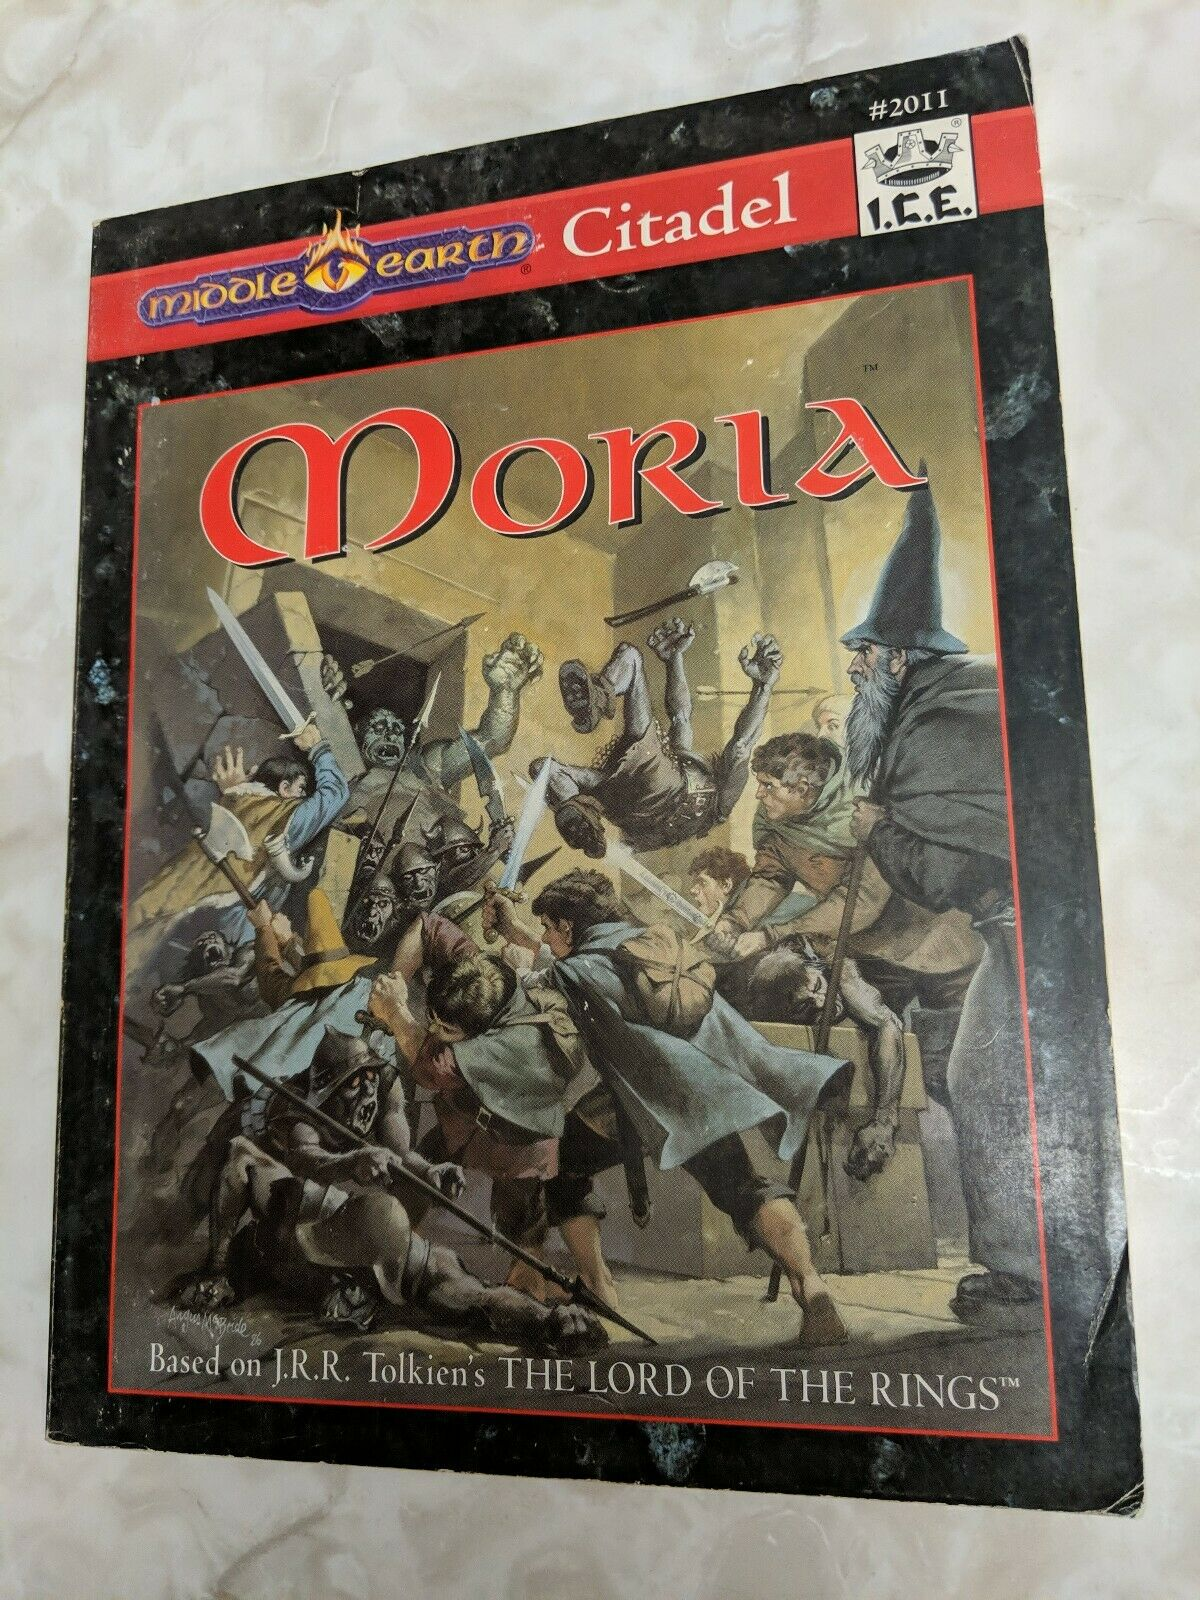 Moria Citadel serie Middle Earth, MERP \35;2011, massaR rollenspel 1994 RPG